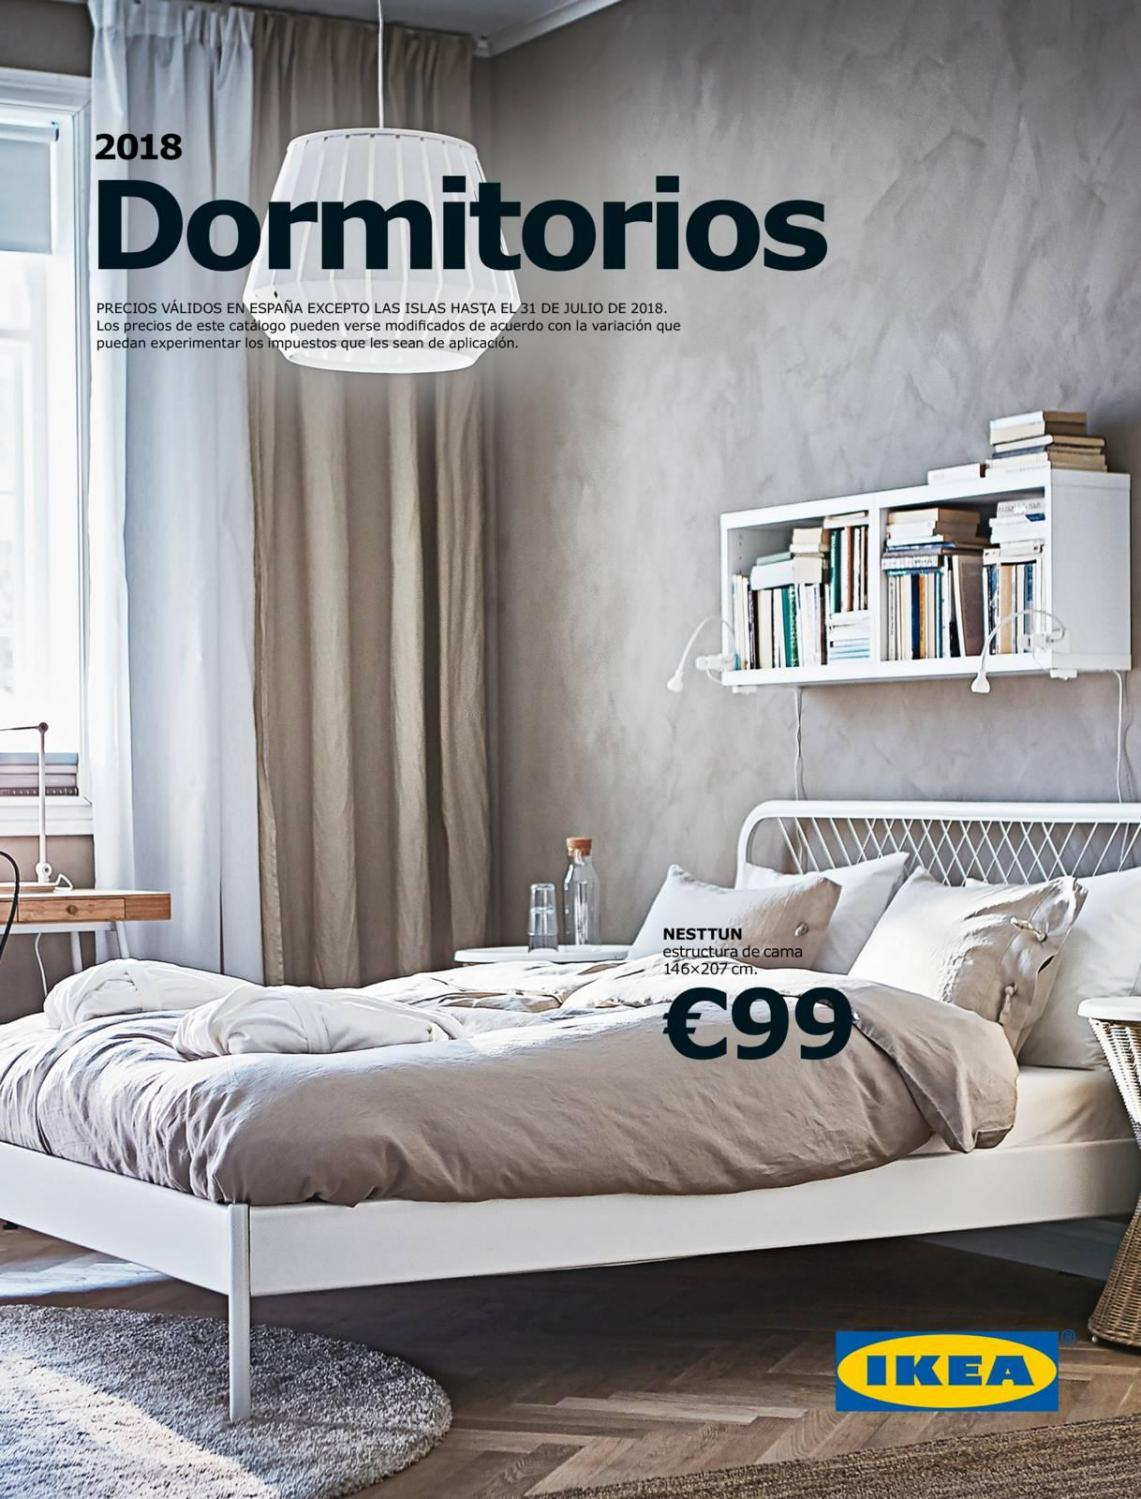 Dormitorio Ikea Catalogo Ikea Dormitorios 2018 By Ofertas Supermercados Issuu